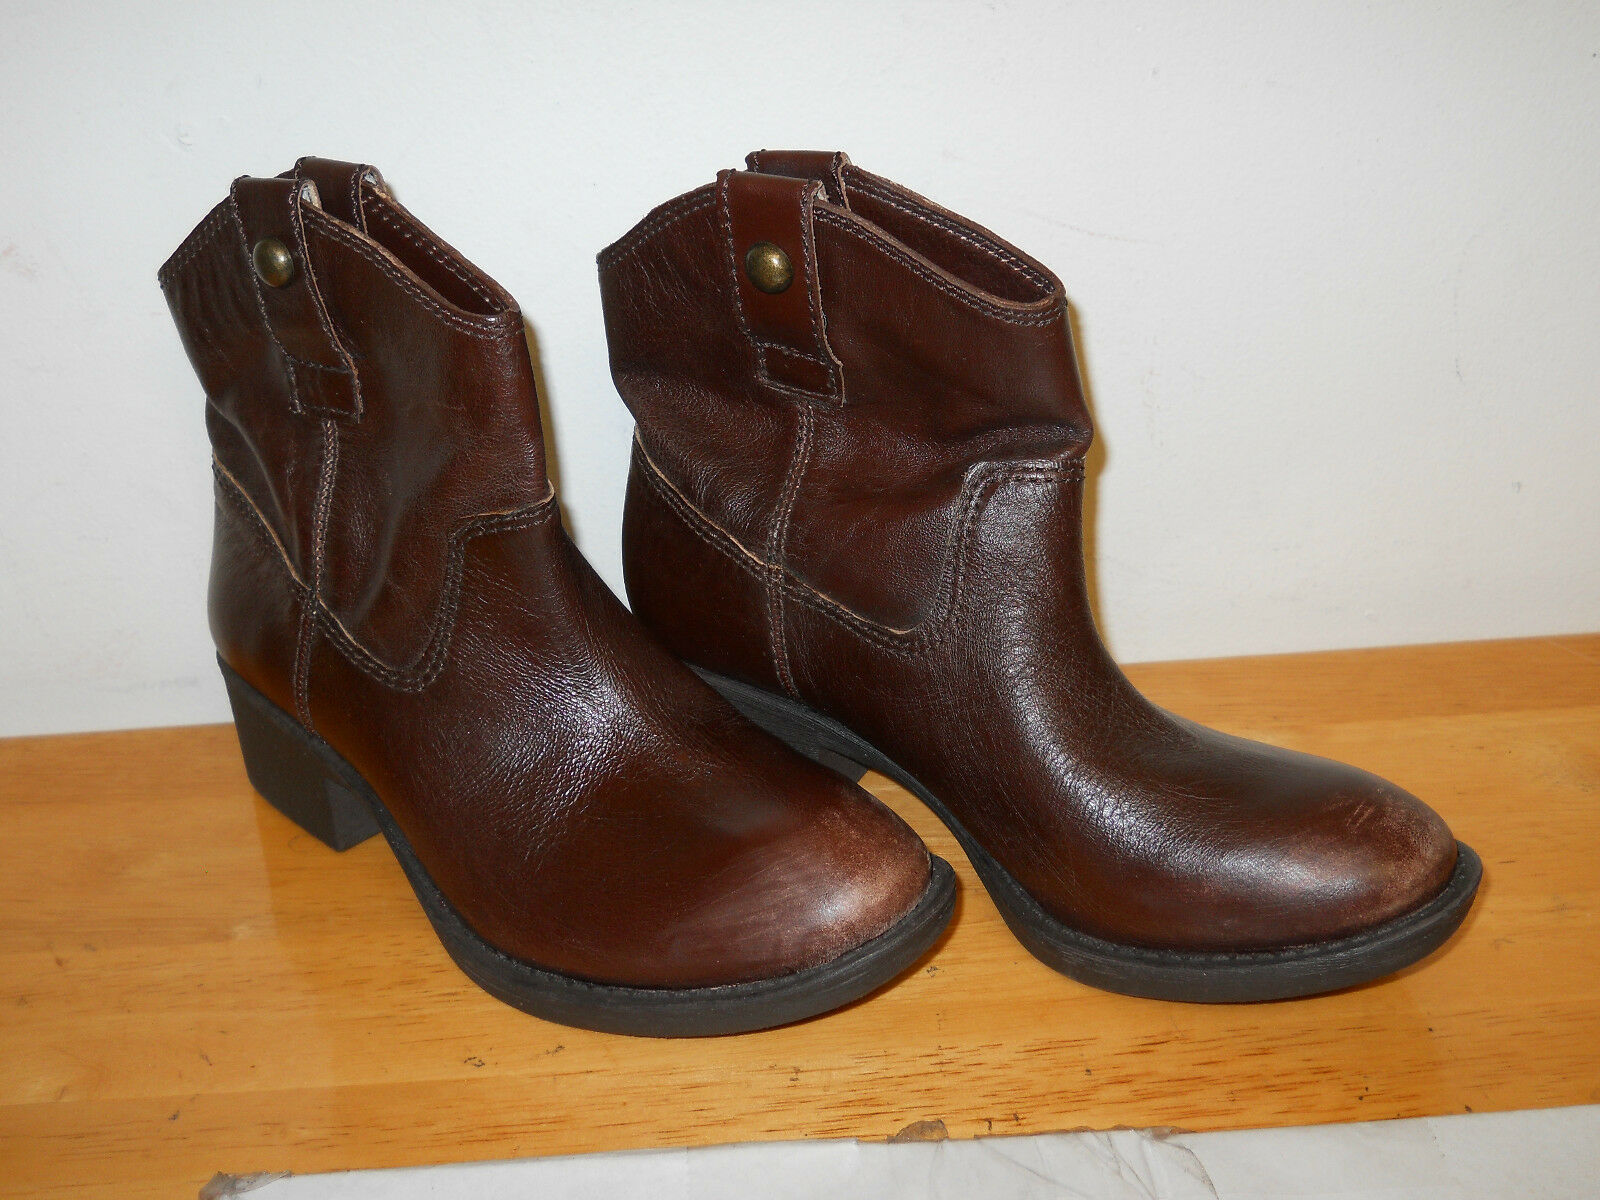 Gianni Bini New Womens Brown  Leather Boots 6 M shoes NWOB